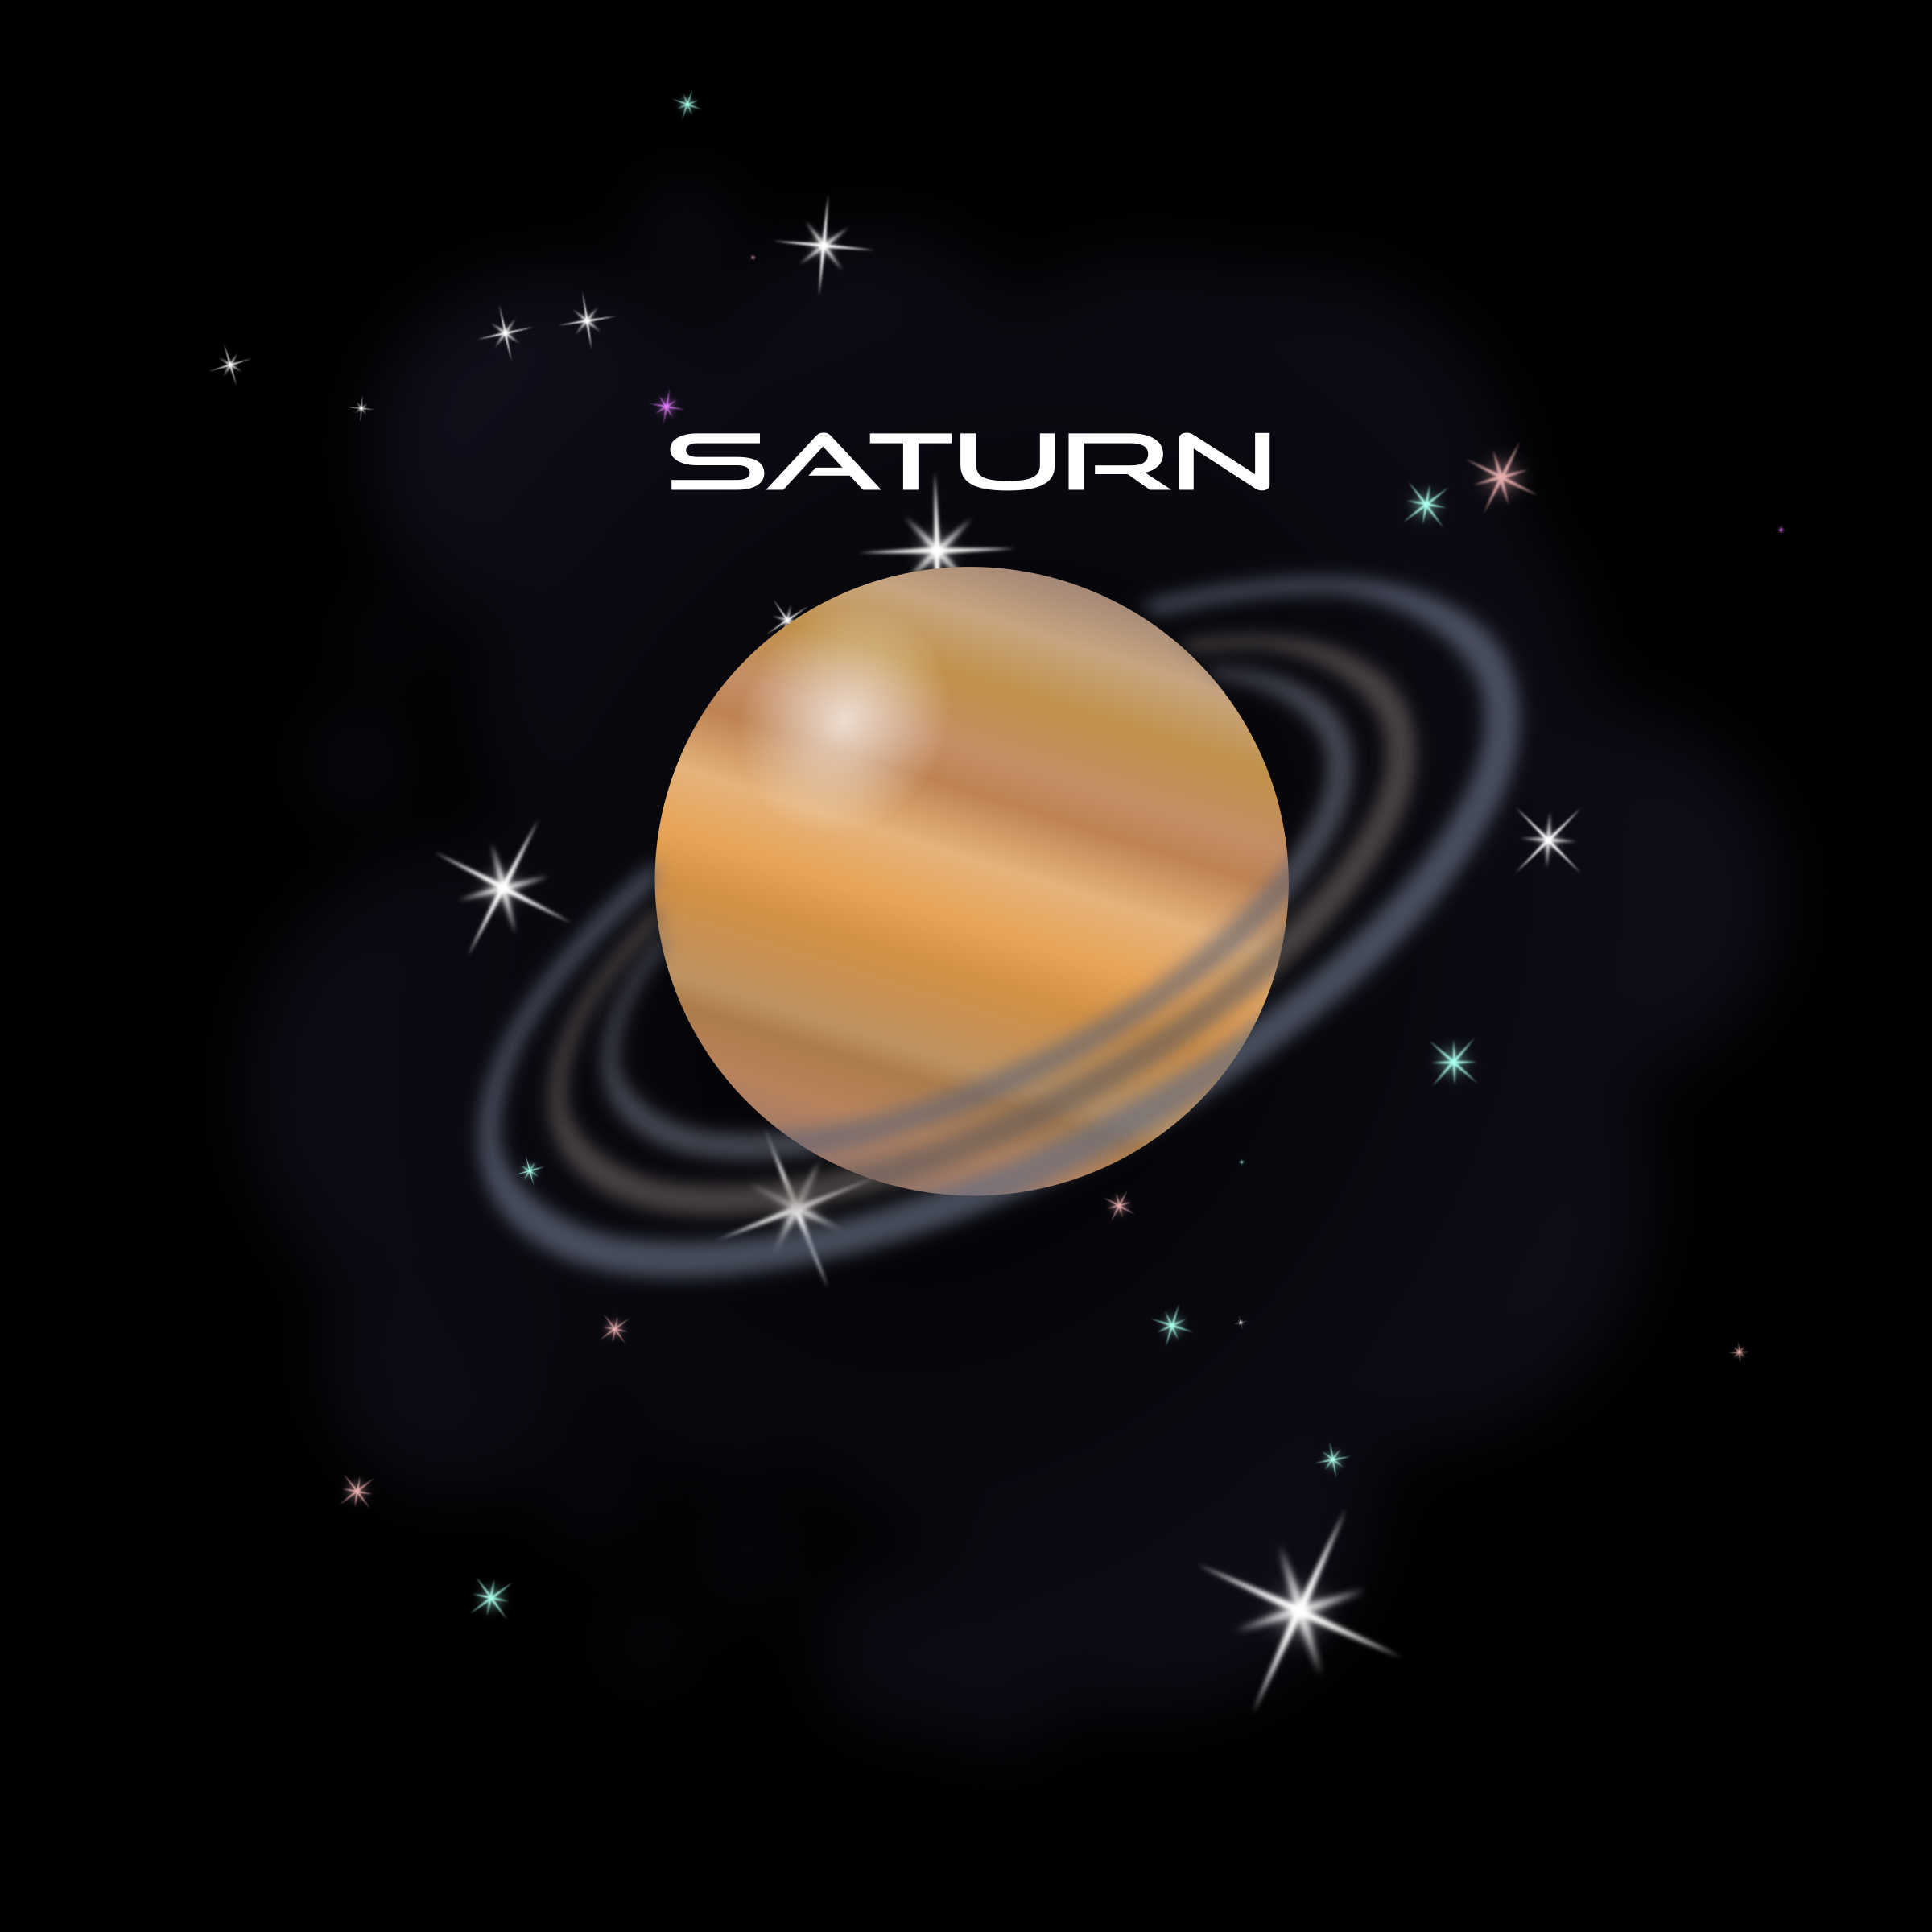 Saturn by gnokii